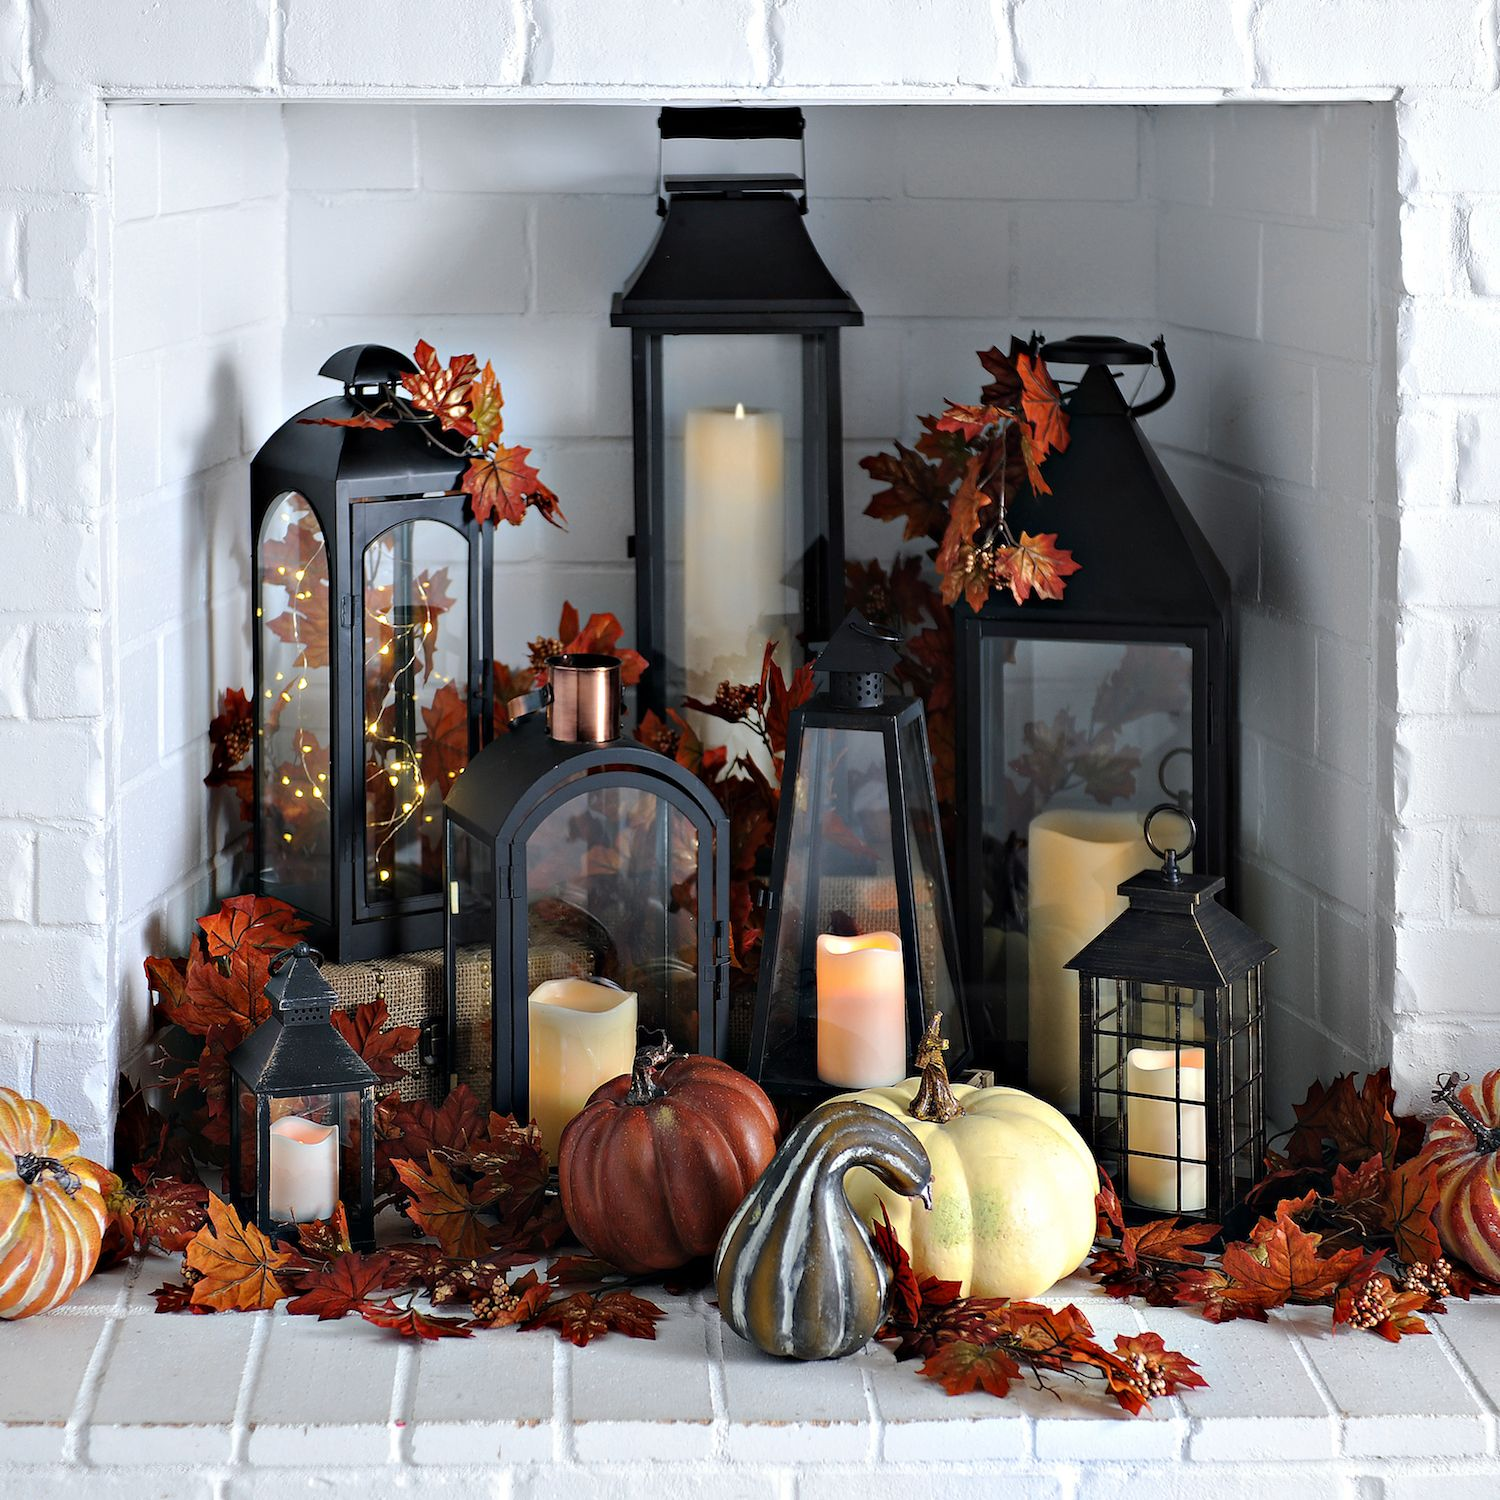 Use your fireplace as another space in your home to decorate for fall! Fill it with an array of lanterns and create a statement. You can also fill the lanterns with string lights, candles or leaves for a fall look! -   24 apartment fireplace decor ideas